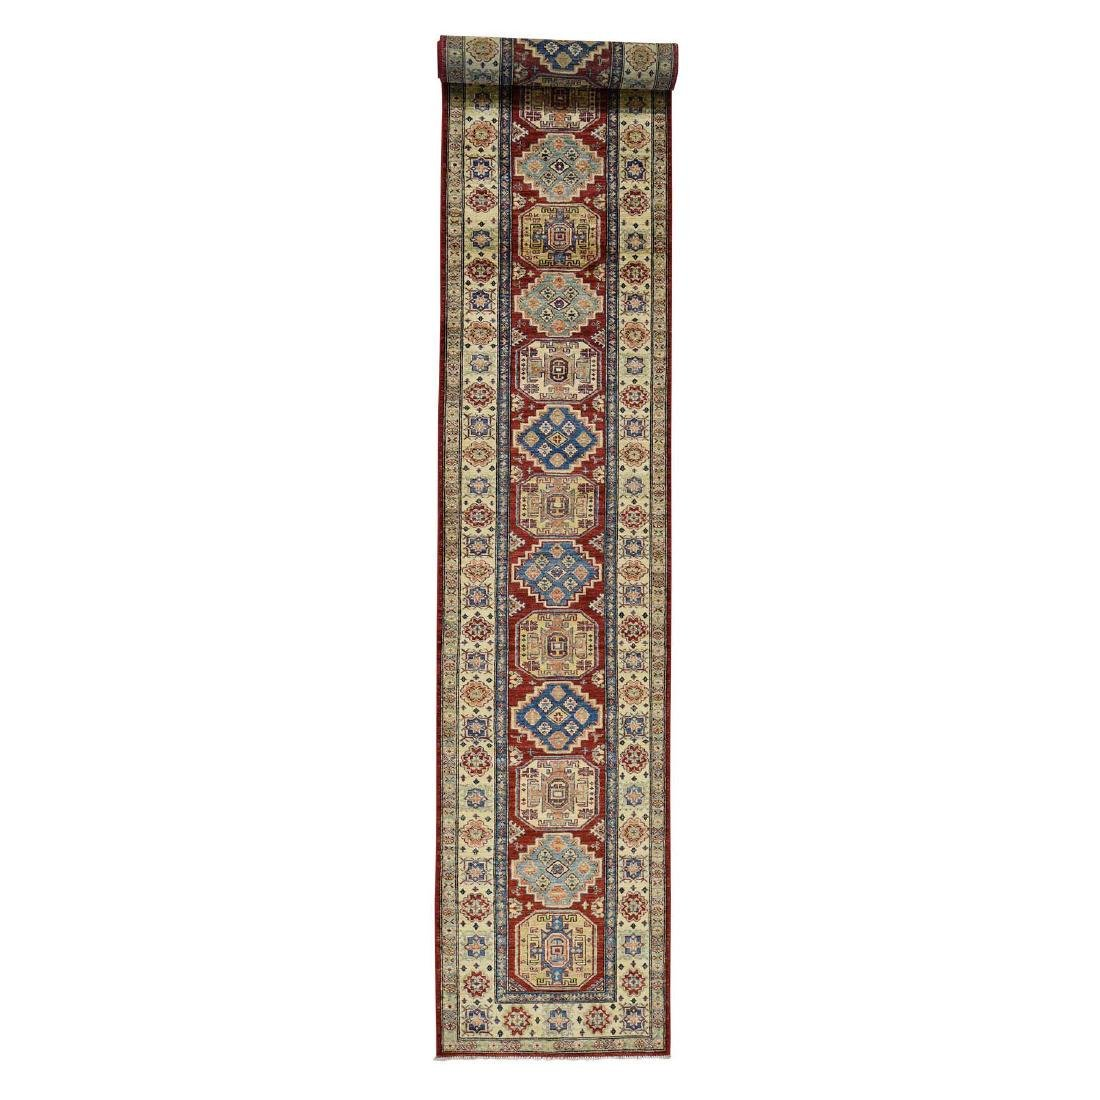 Hand-Knotted Pure Wool XL Red Super Kazak Runner Rug